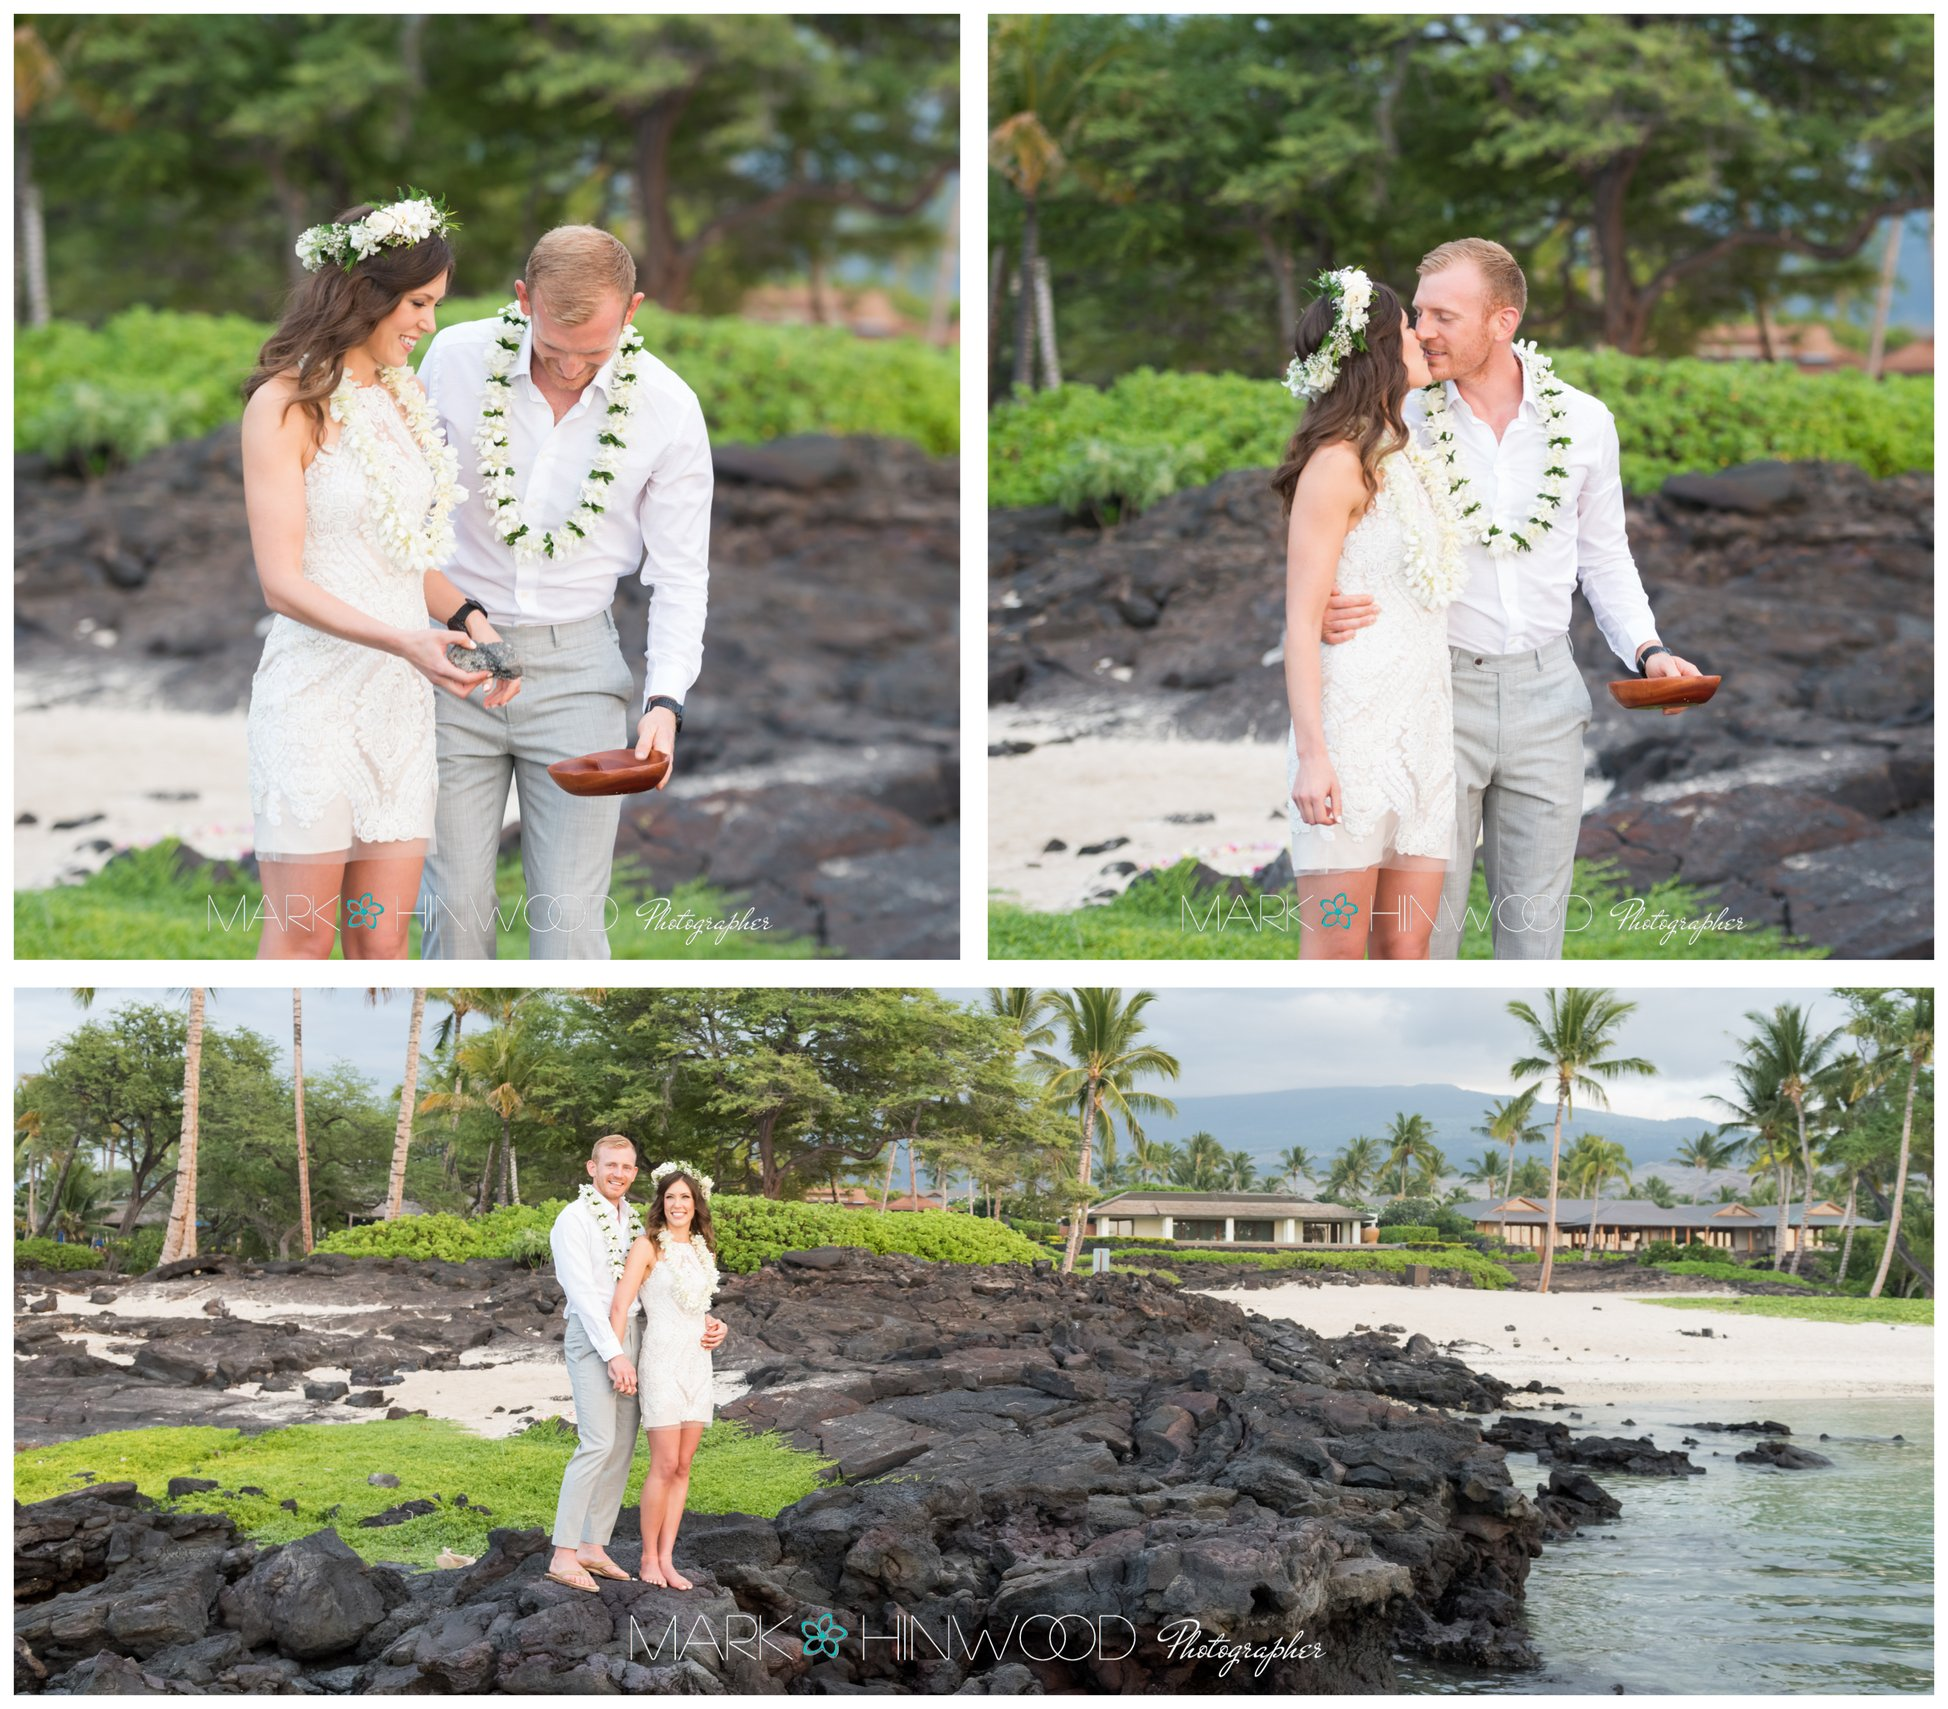 Amazing Hawaii beach weddings 2